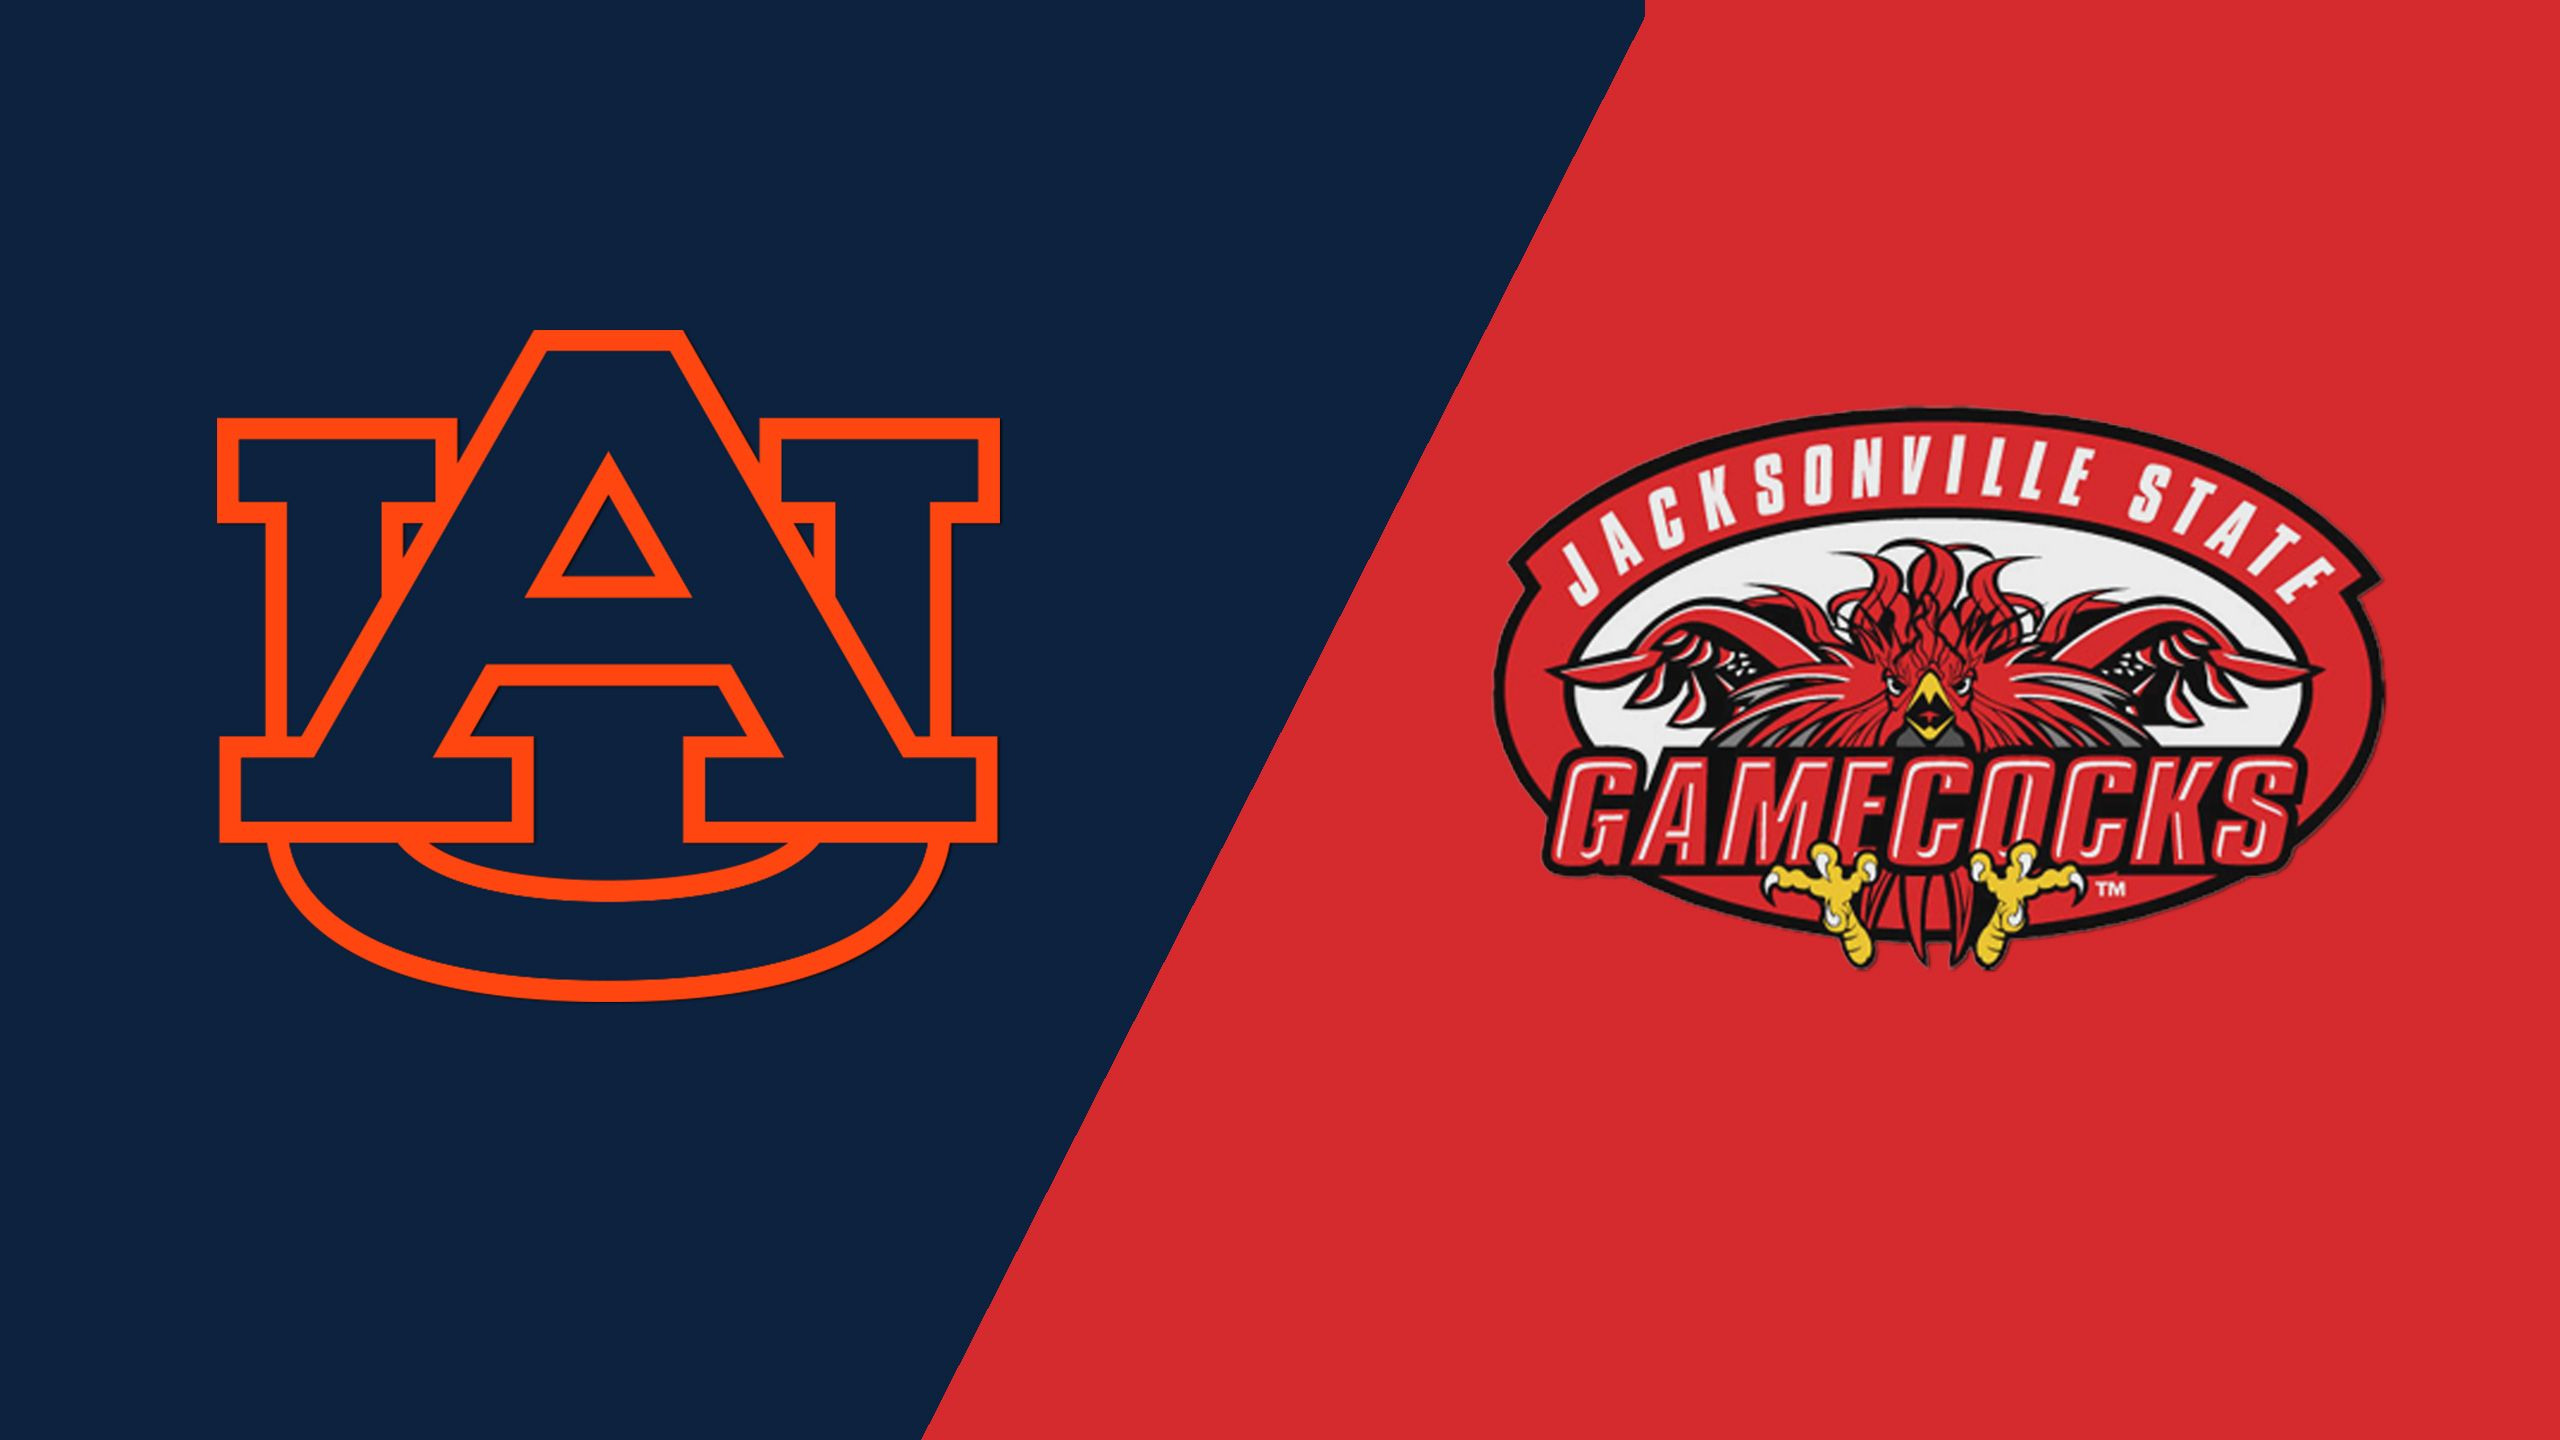 Auburn vs. Jacksonville State (Site 7 / Game 5) (NCAA Softball Championship)